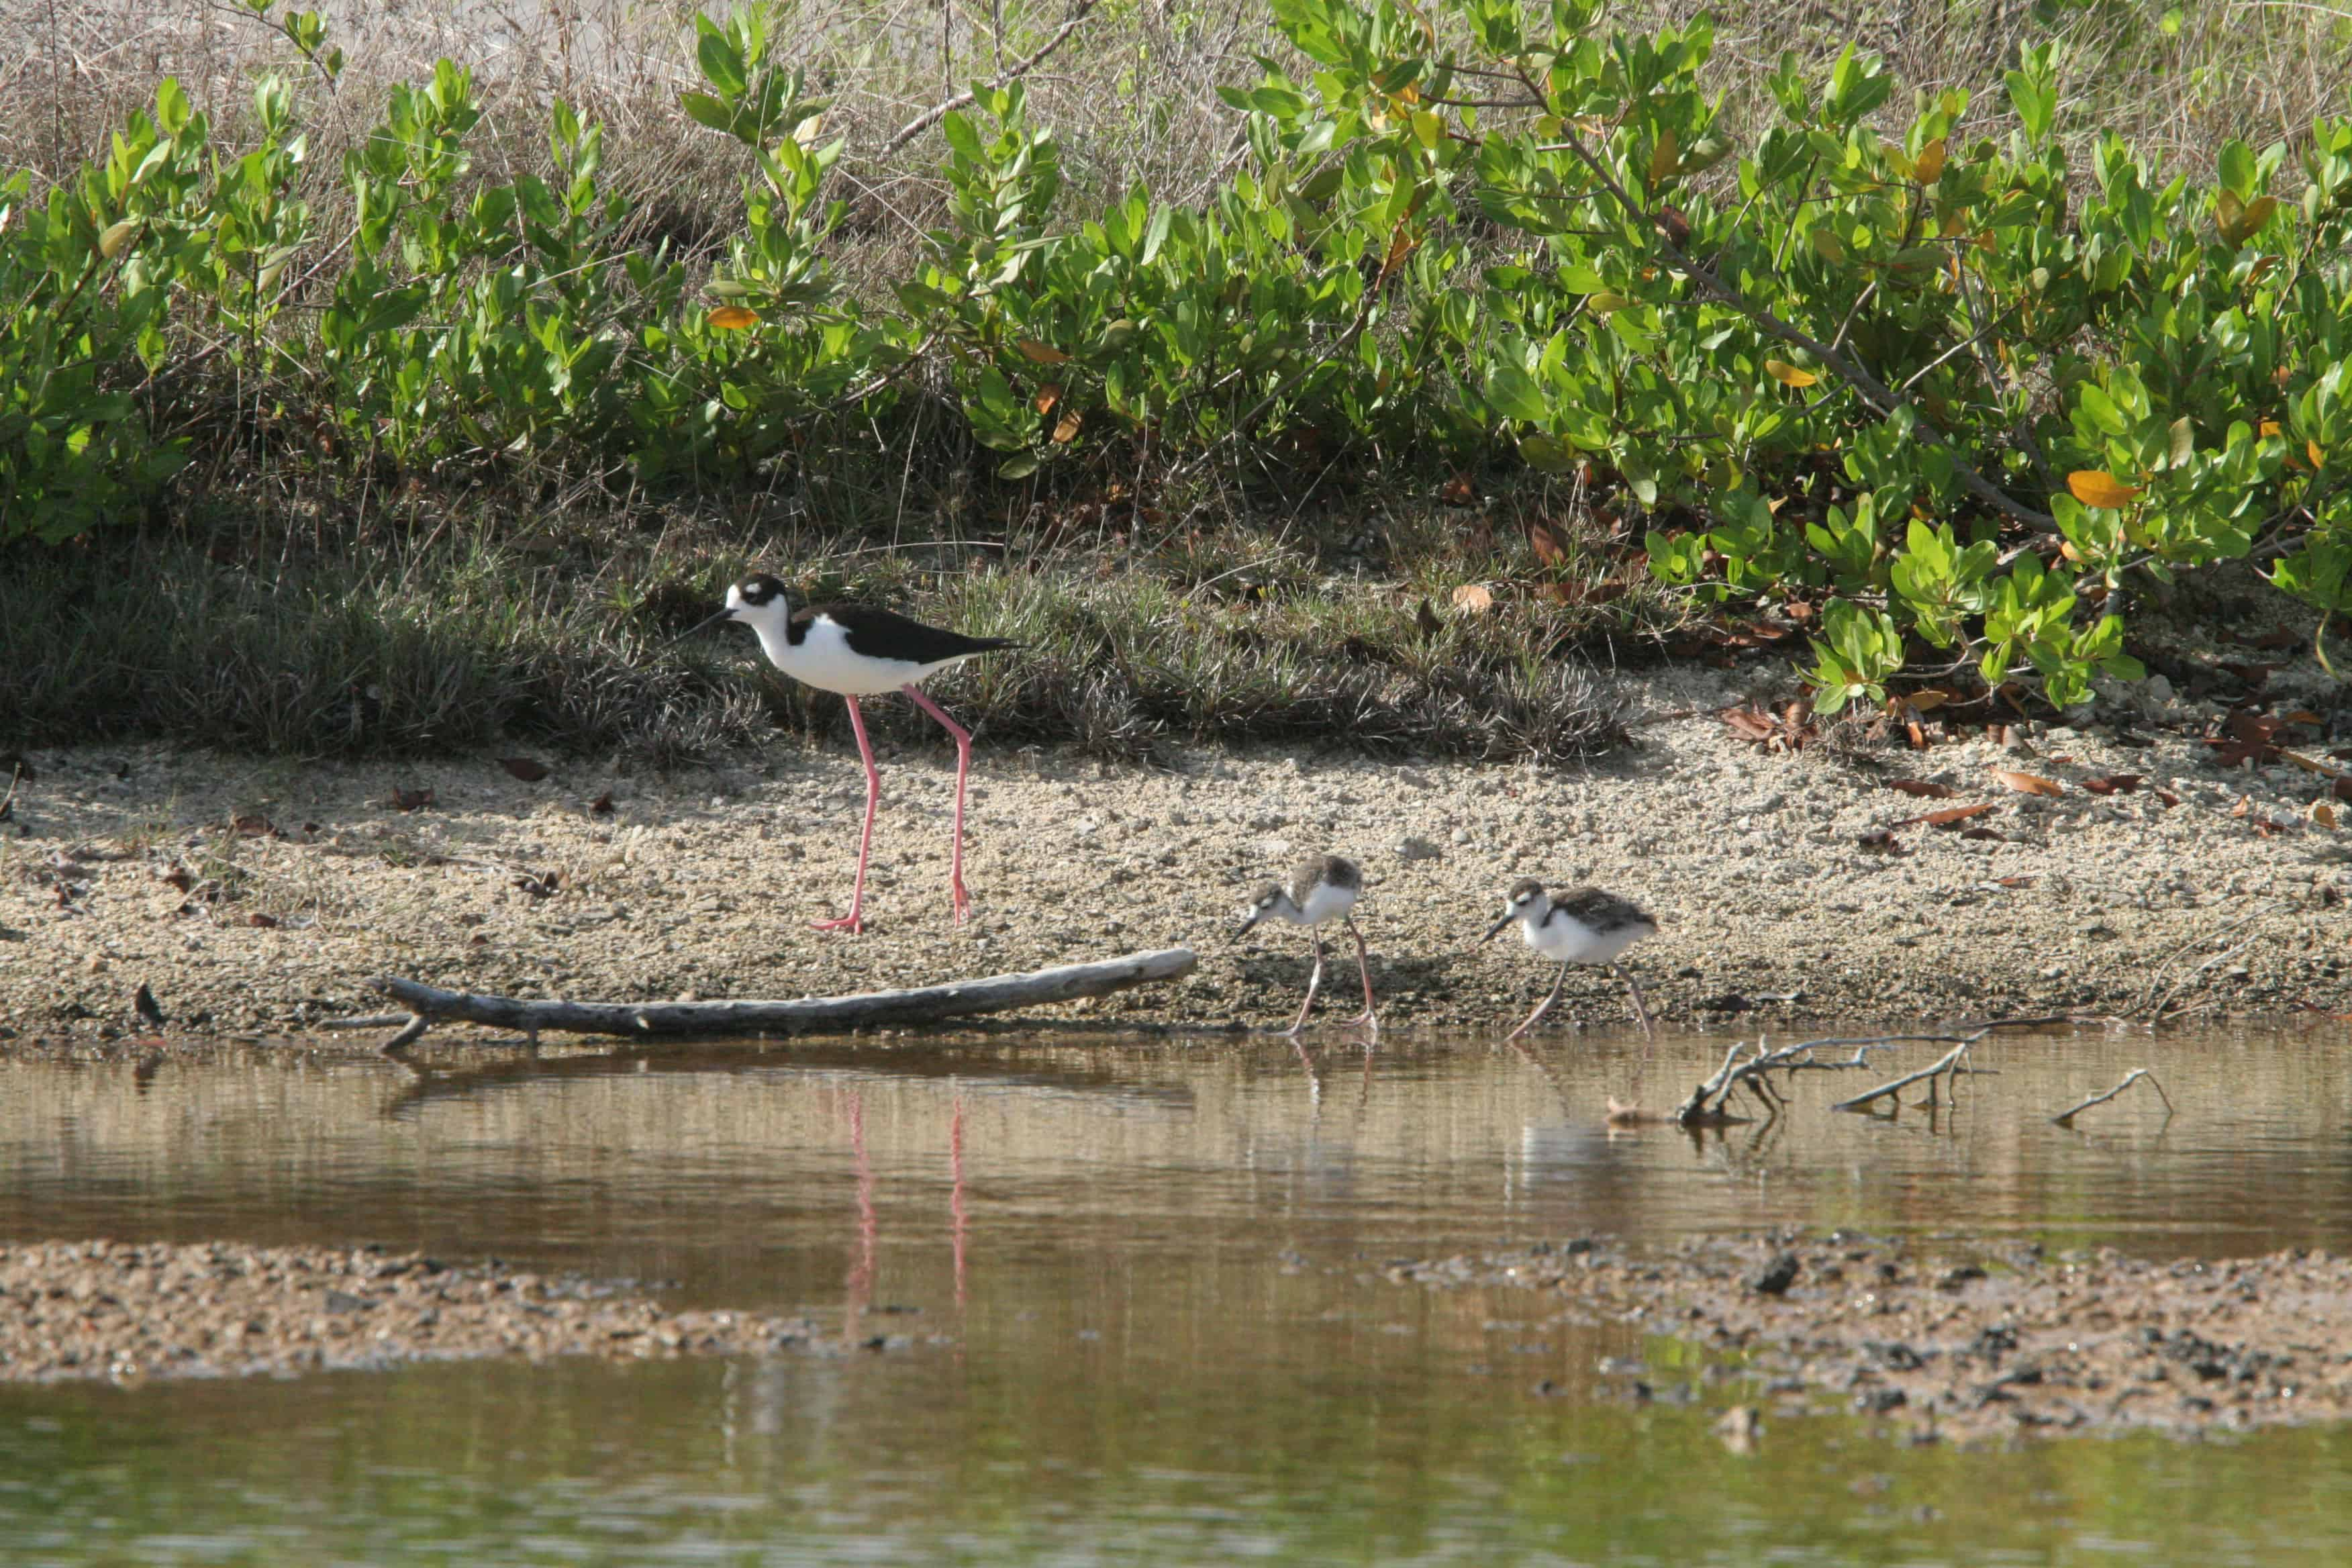 On one of the Mainland ponds, black-necked stilt guards and guides chicks which, like most shorebird chicks, hunt their own food even when newly hatched. Copyright: Dr Mike Pienkowski